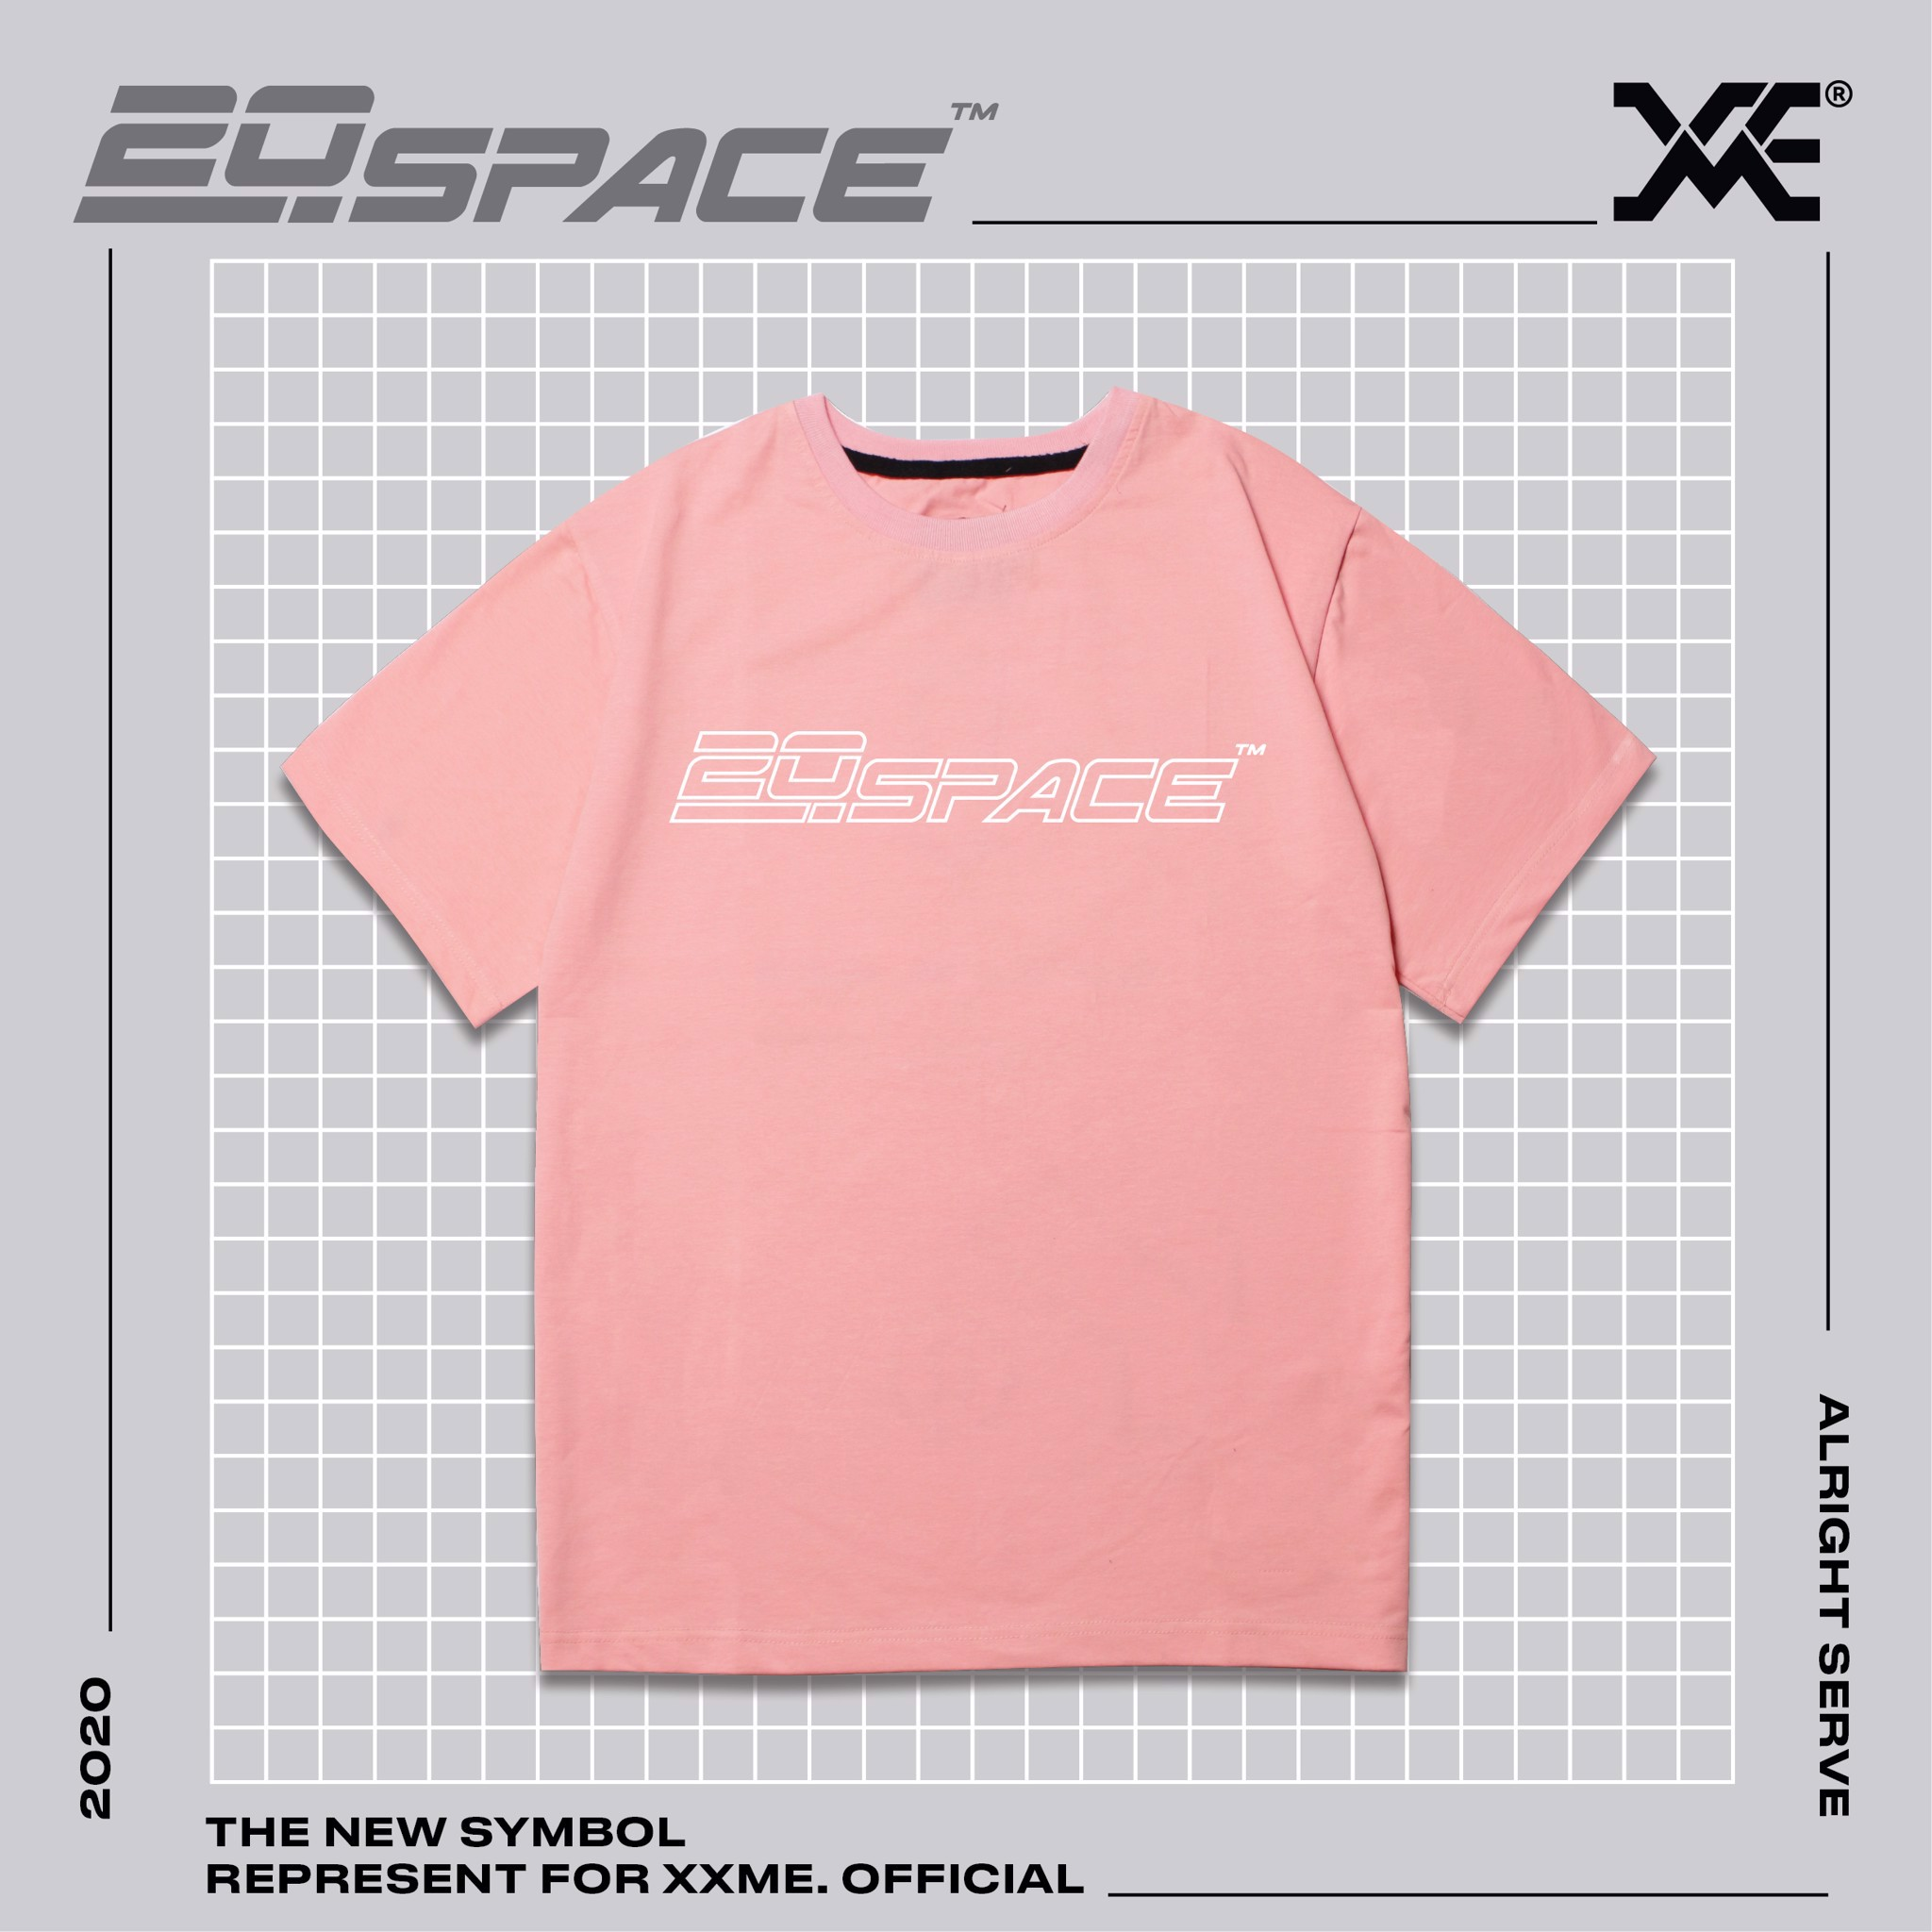 20SPACE Tshirt - PINK